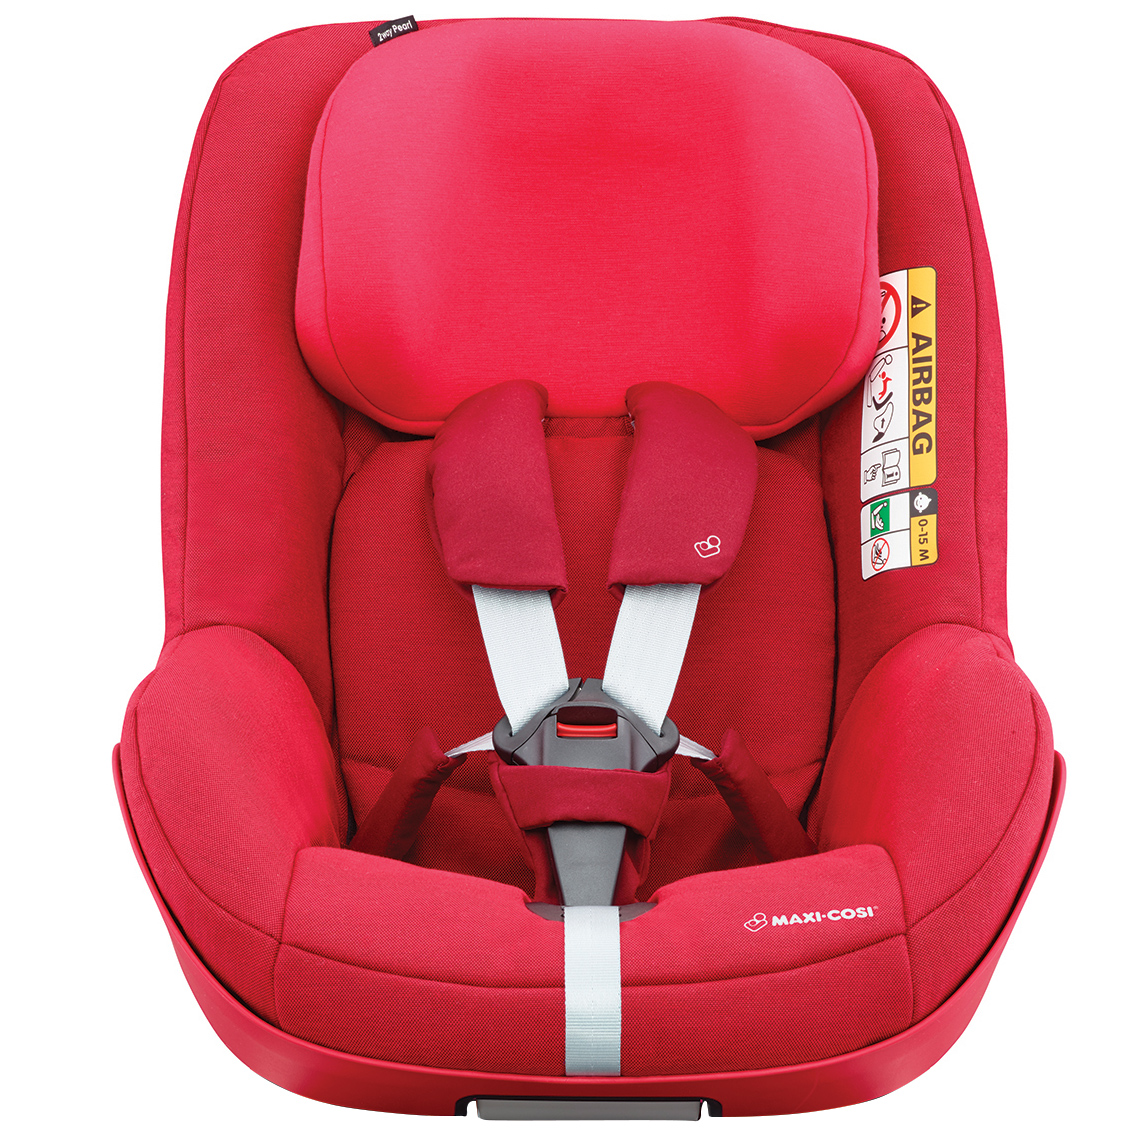 maxi cosi safety seat 2way pearl 2018 vivid red buy at kidsroom car seats. Black Bedroom Furniture Sets. Home Design Ideas